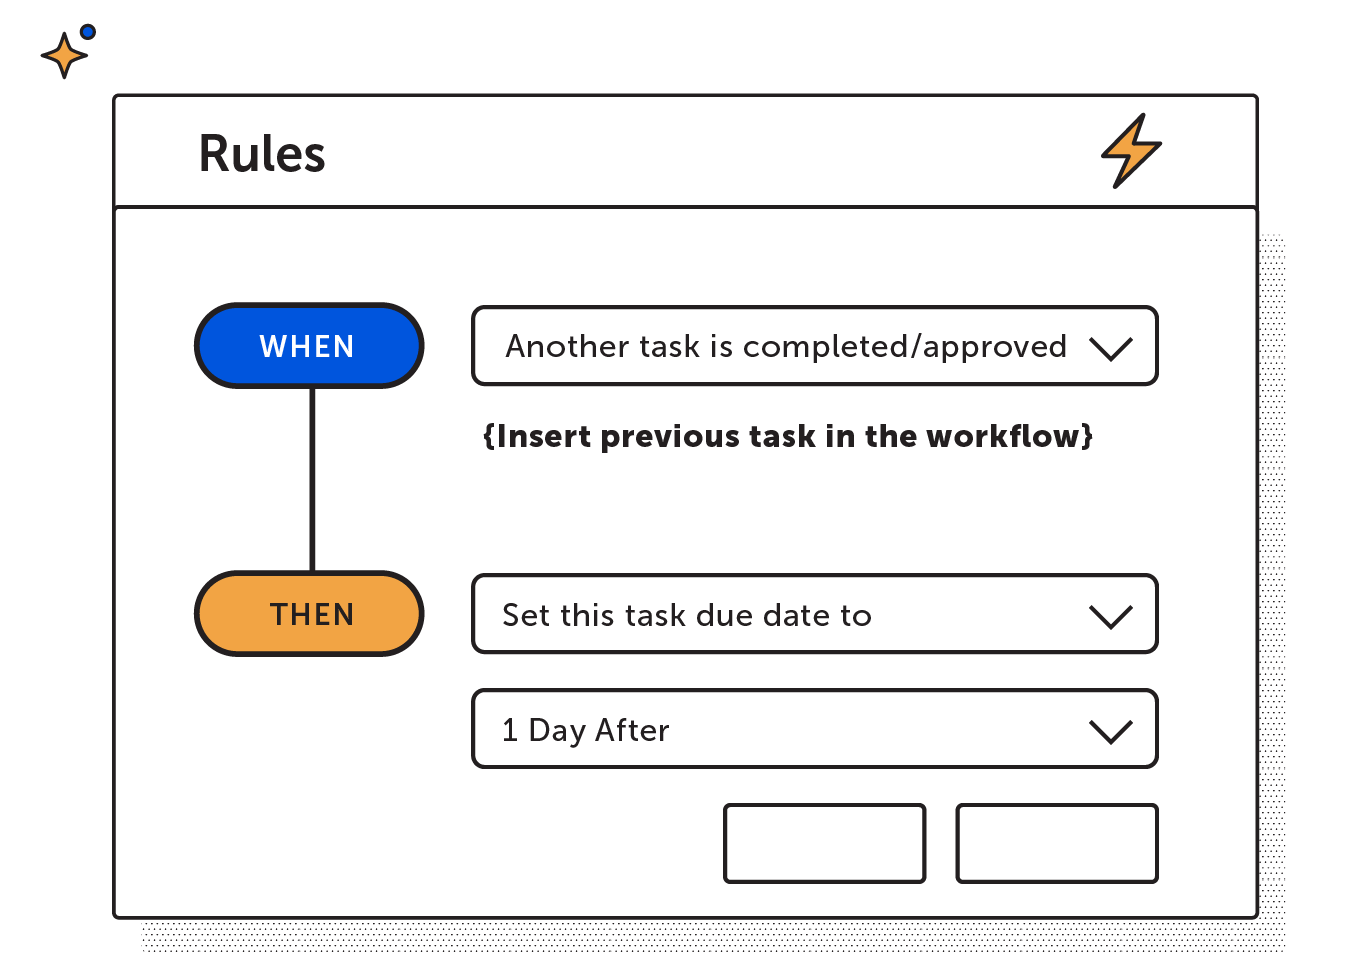 Set task due date rule